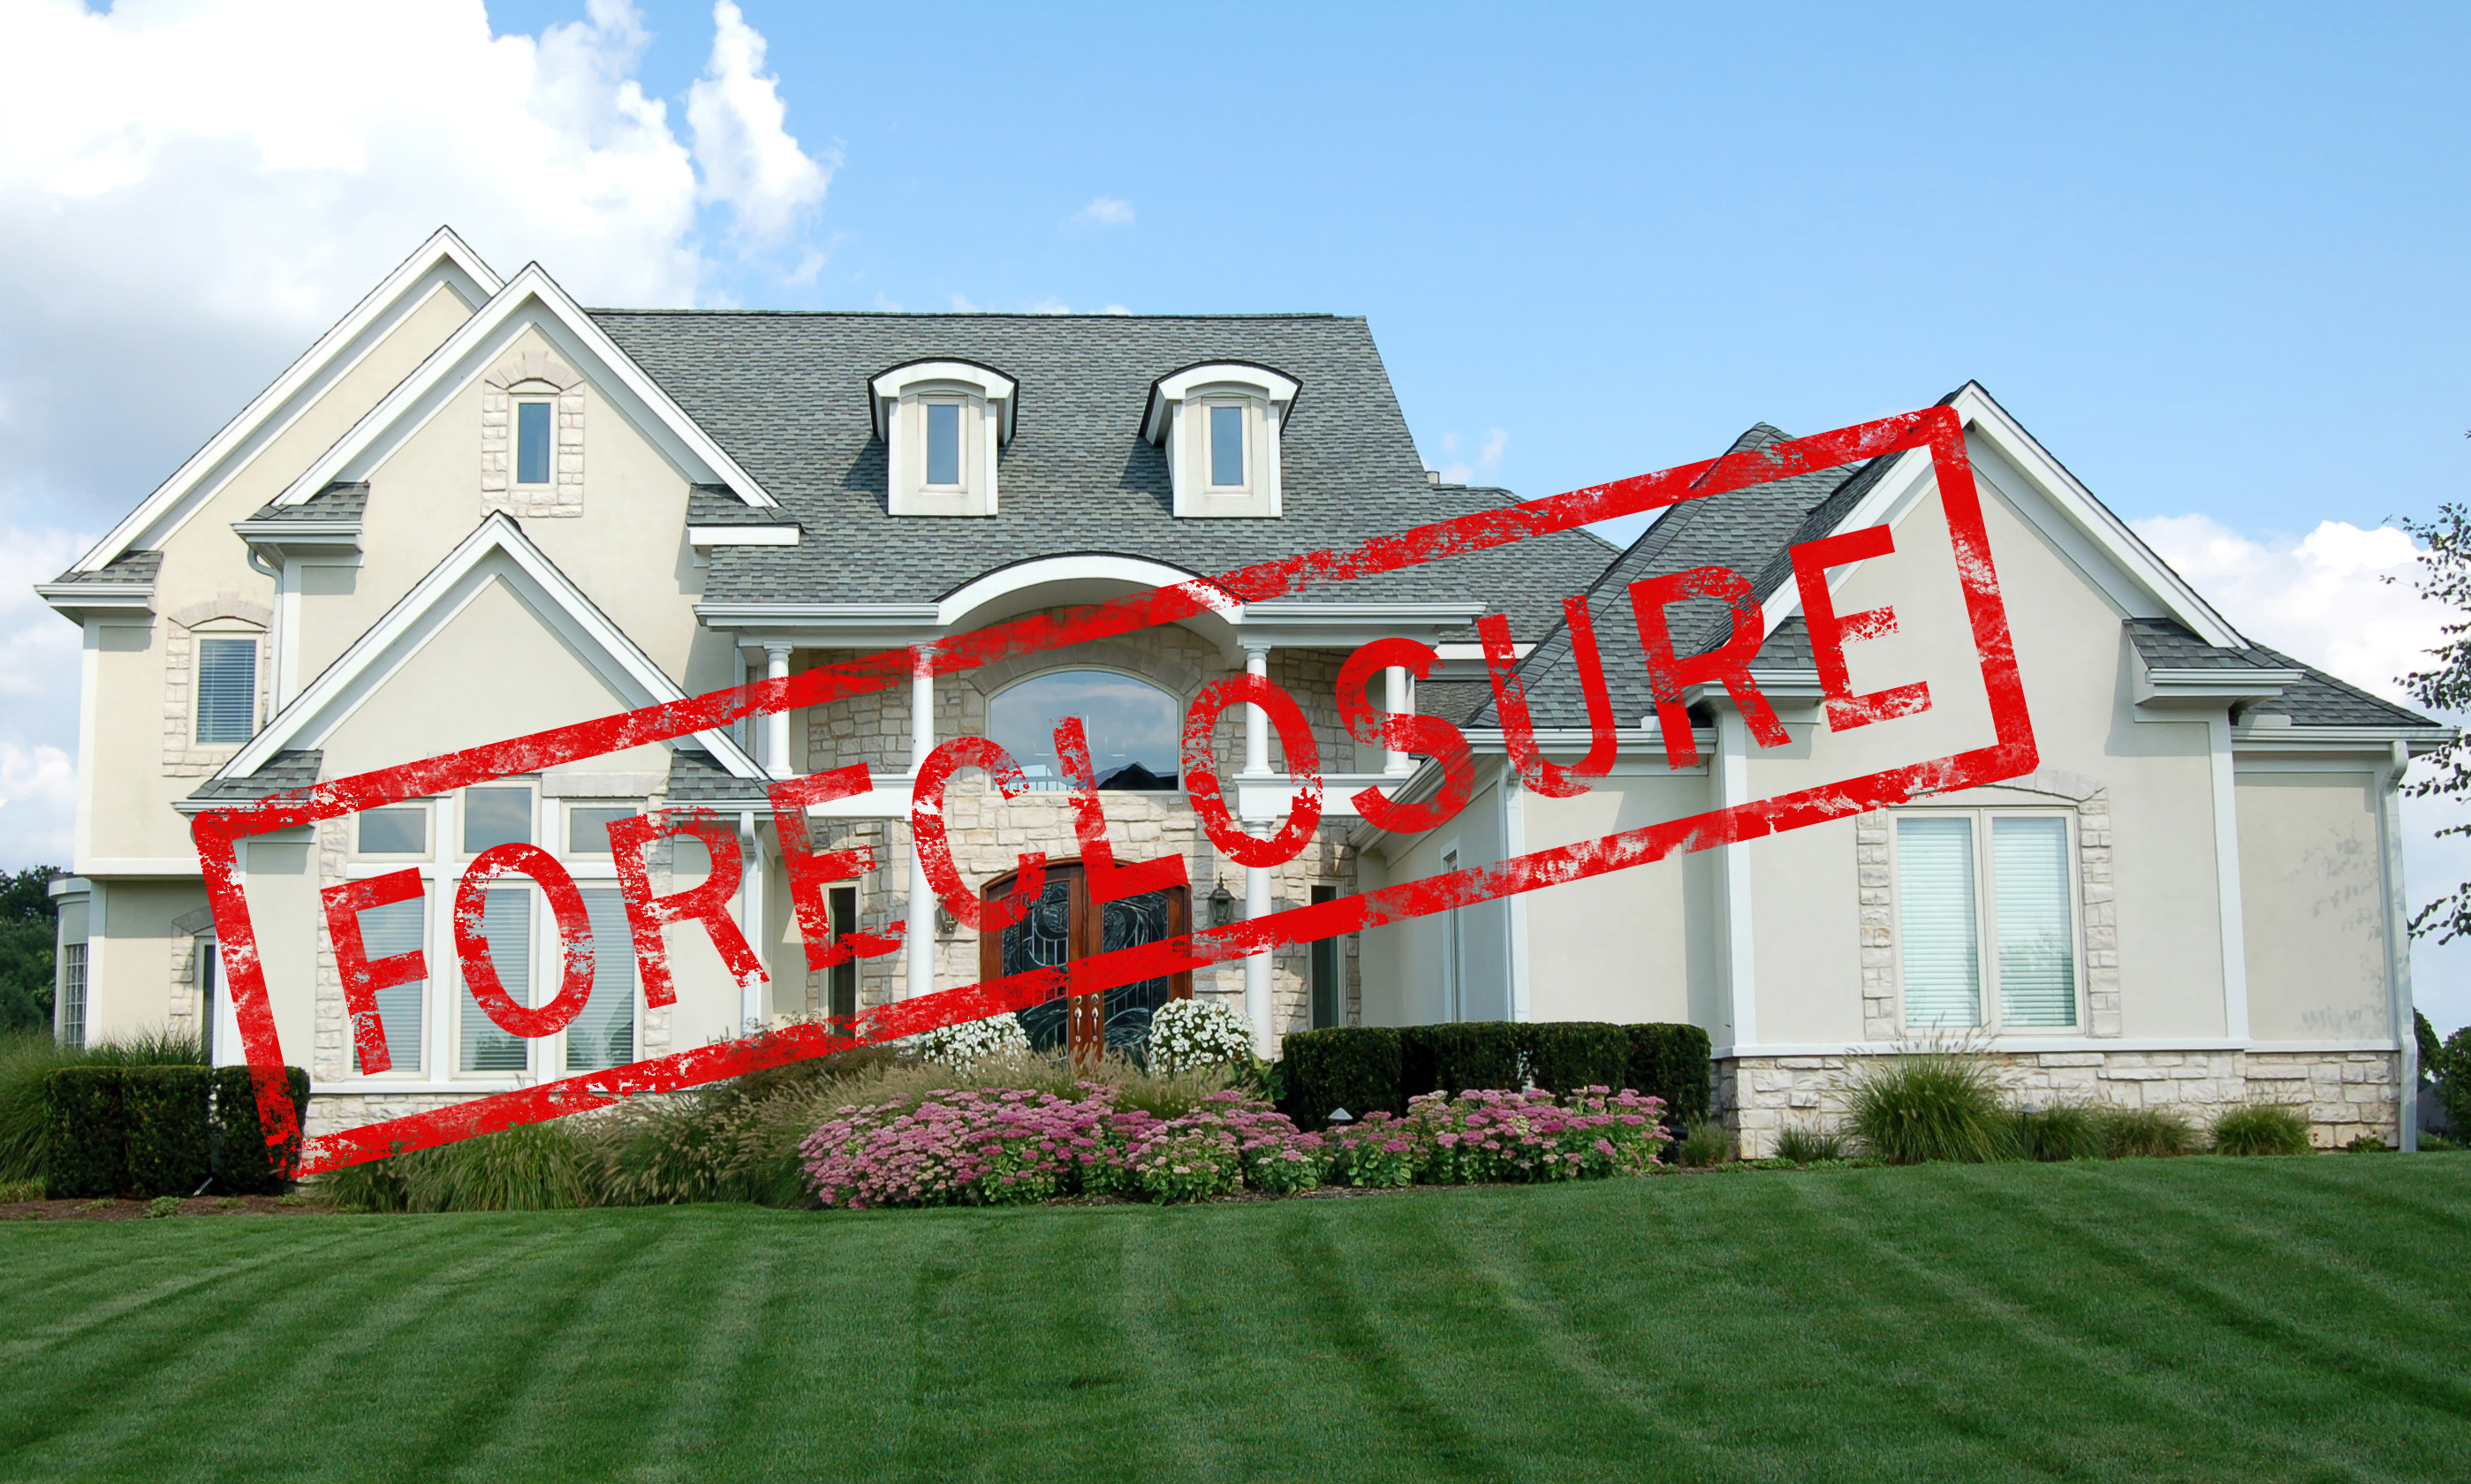 Call Hiland Appraisals, LLC to order appraisals of Ashe foreclosures